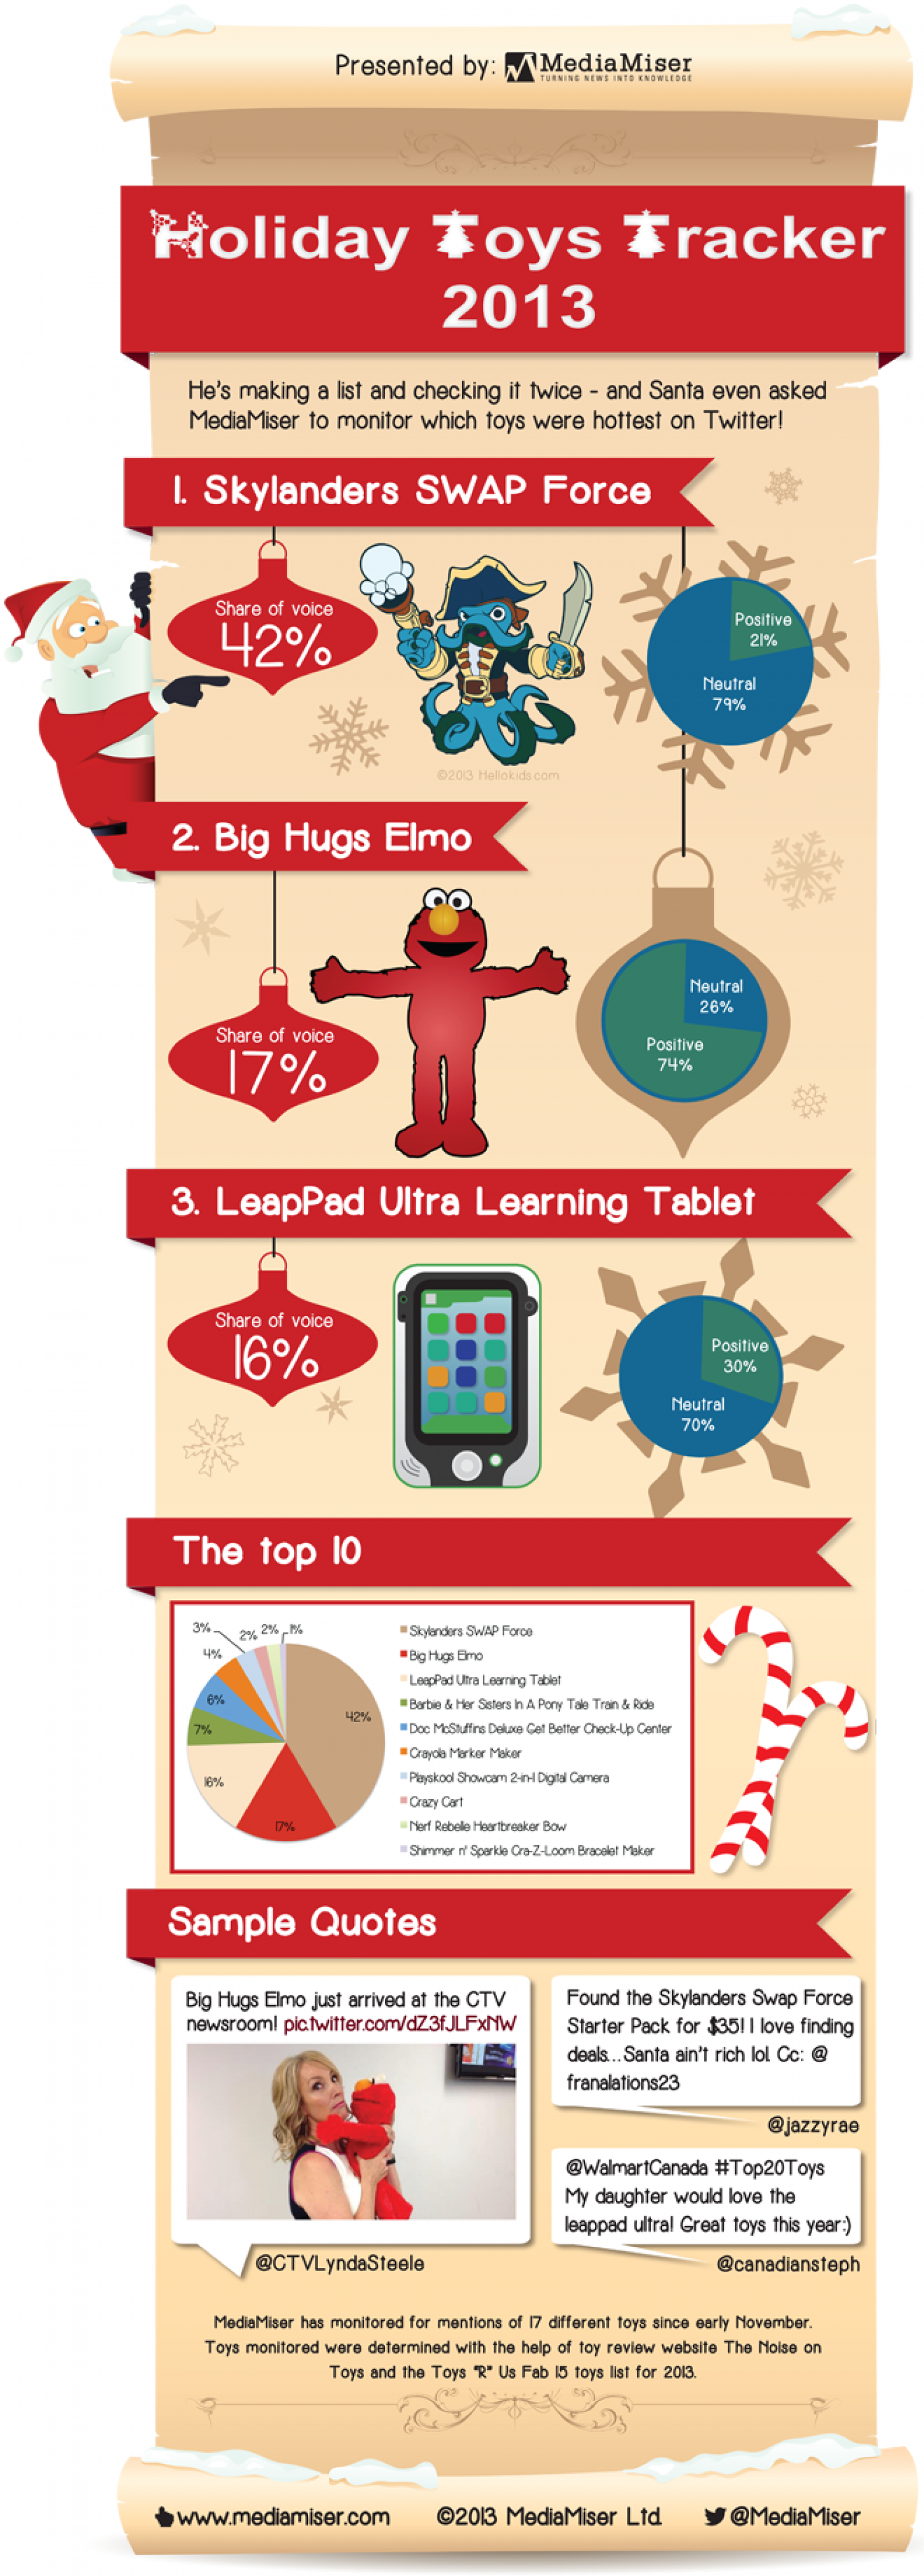 Holiday Toys Tracker 2013 Infographic